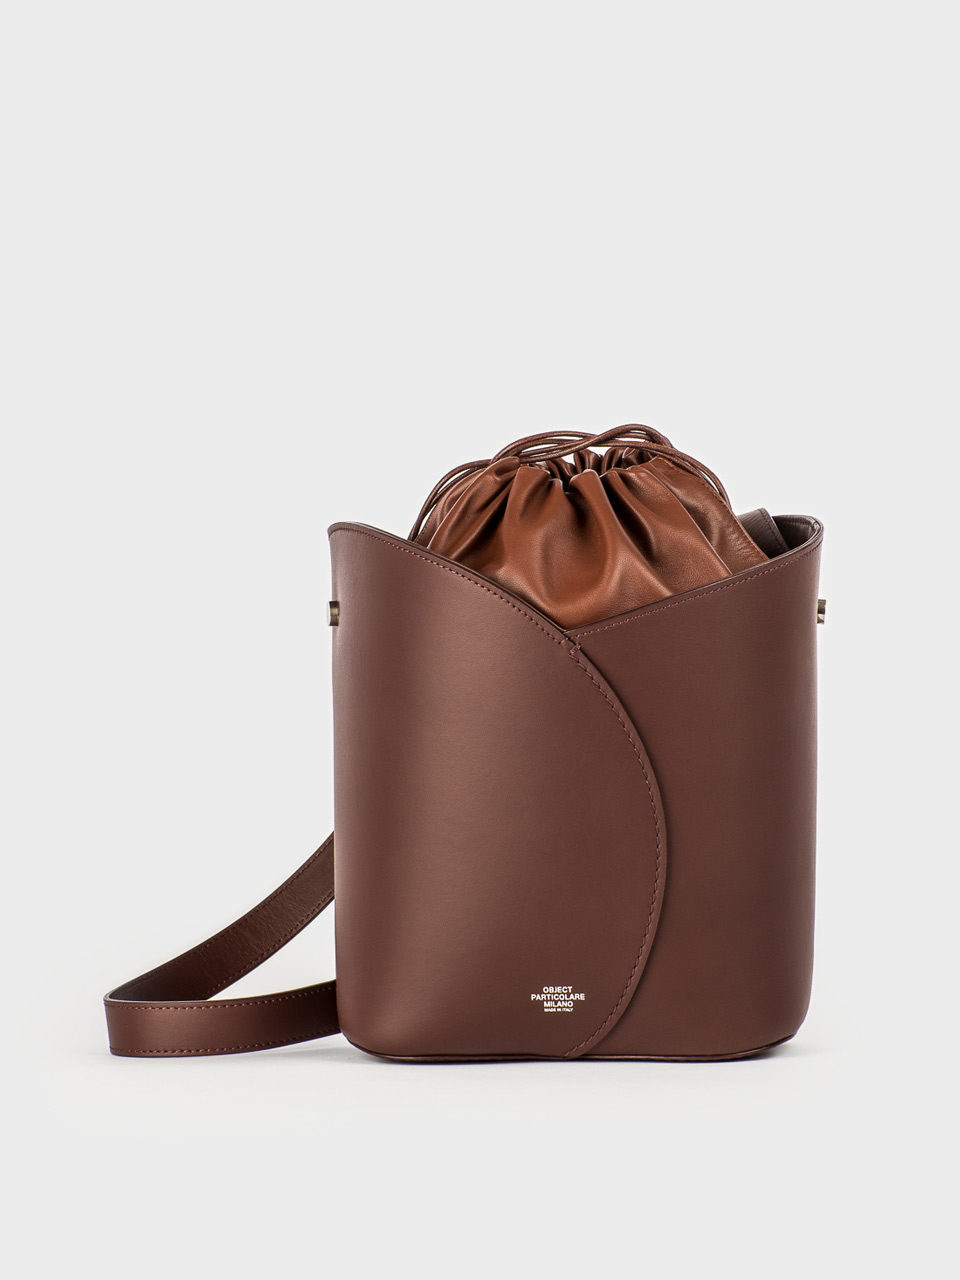 Sac Vitti Coulisse Object Particolare